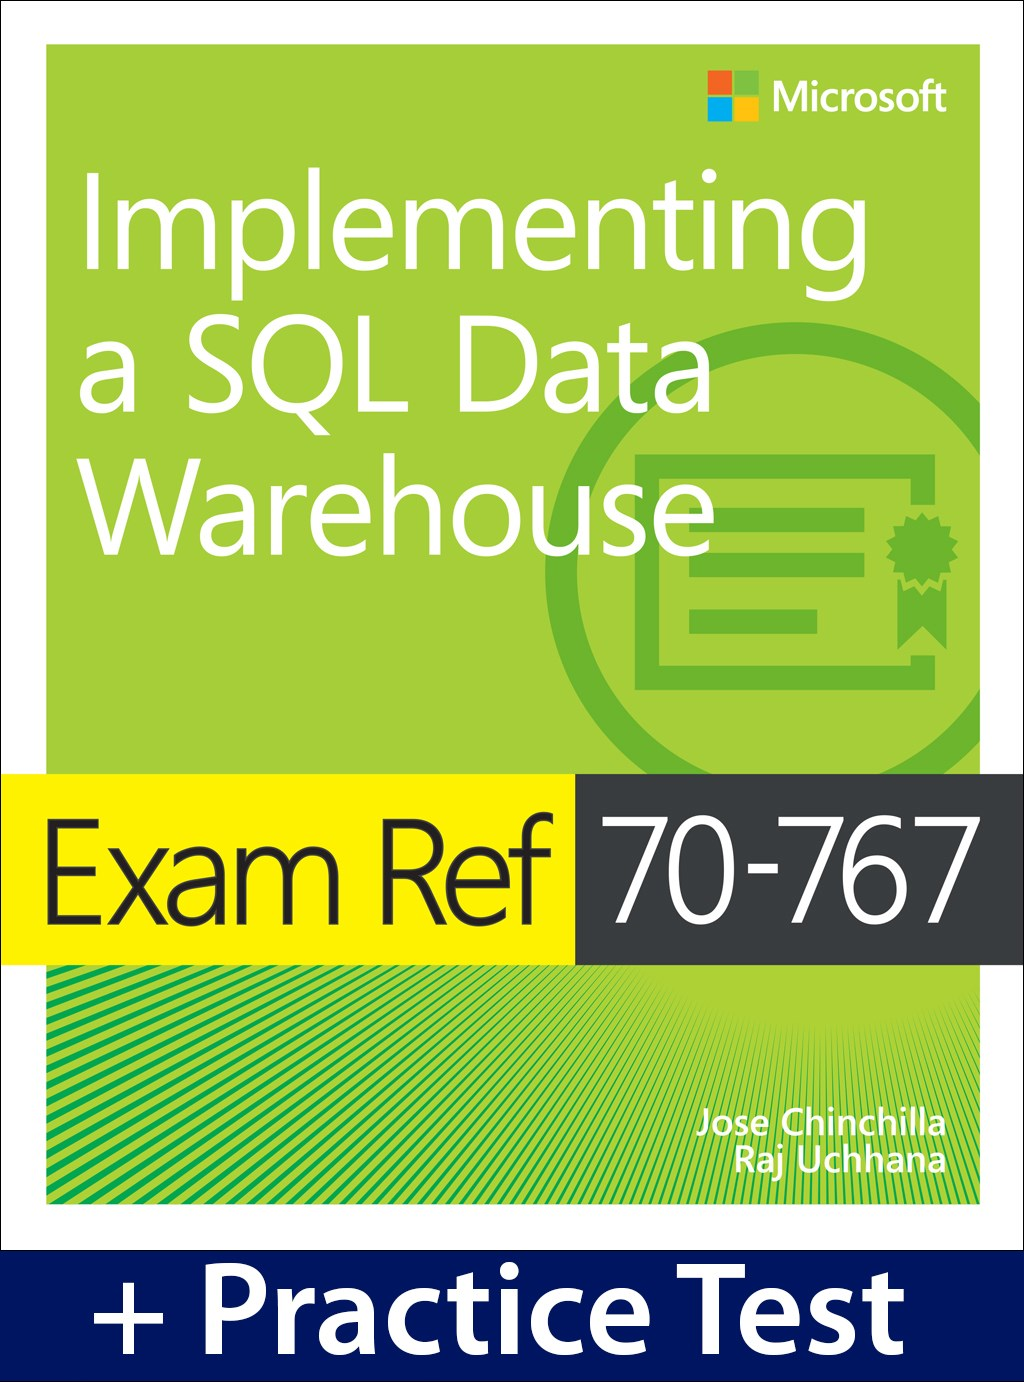 Exam Ref 70-767 Implementing a SQL Data Warehouse with Practice Test